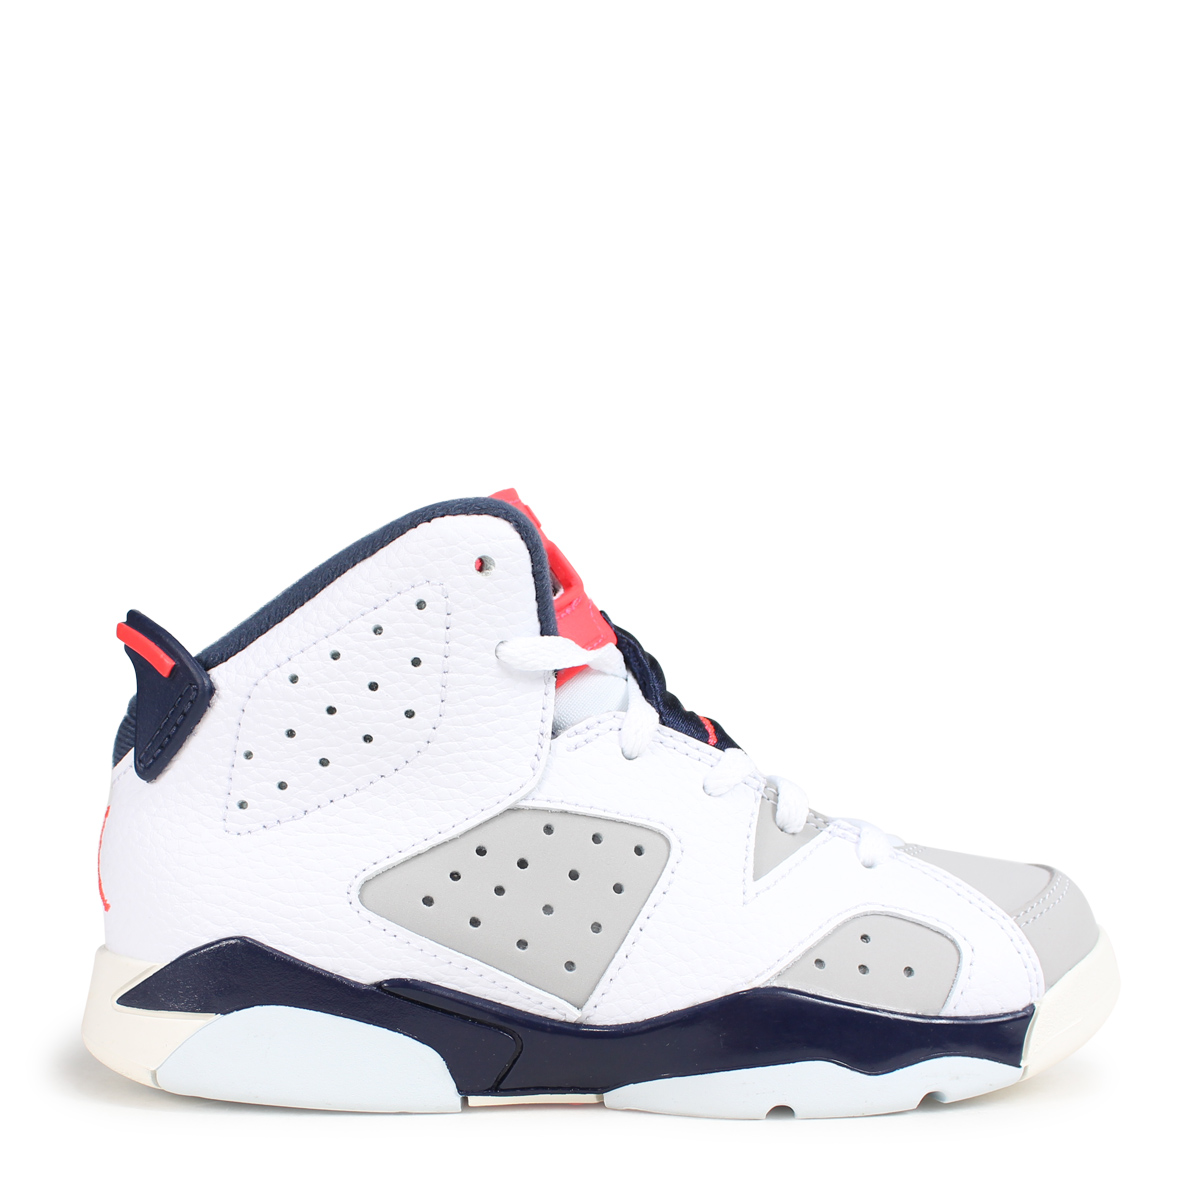 hot sale online 15958 ad563 NIKE AIR JORDAN 6 RETRO PS TINKER Nike Air Jordan 6 nostalgic kids sneakers  384,666-104 white [load planned Shinnyu load in reservation product 10/22  ...